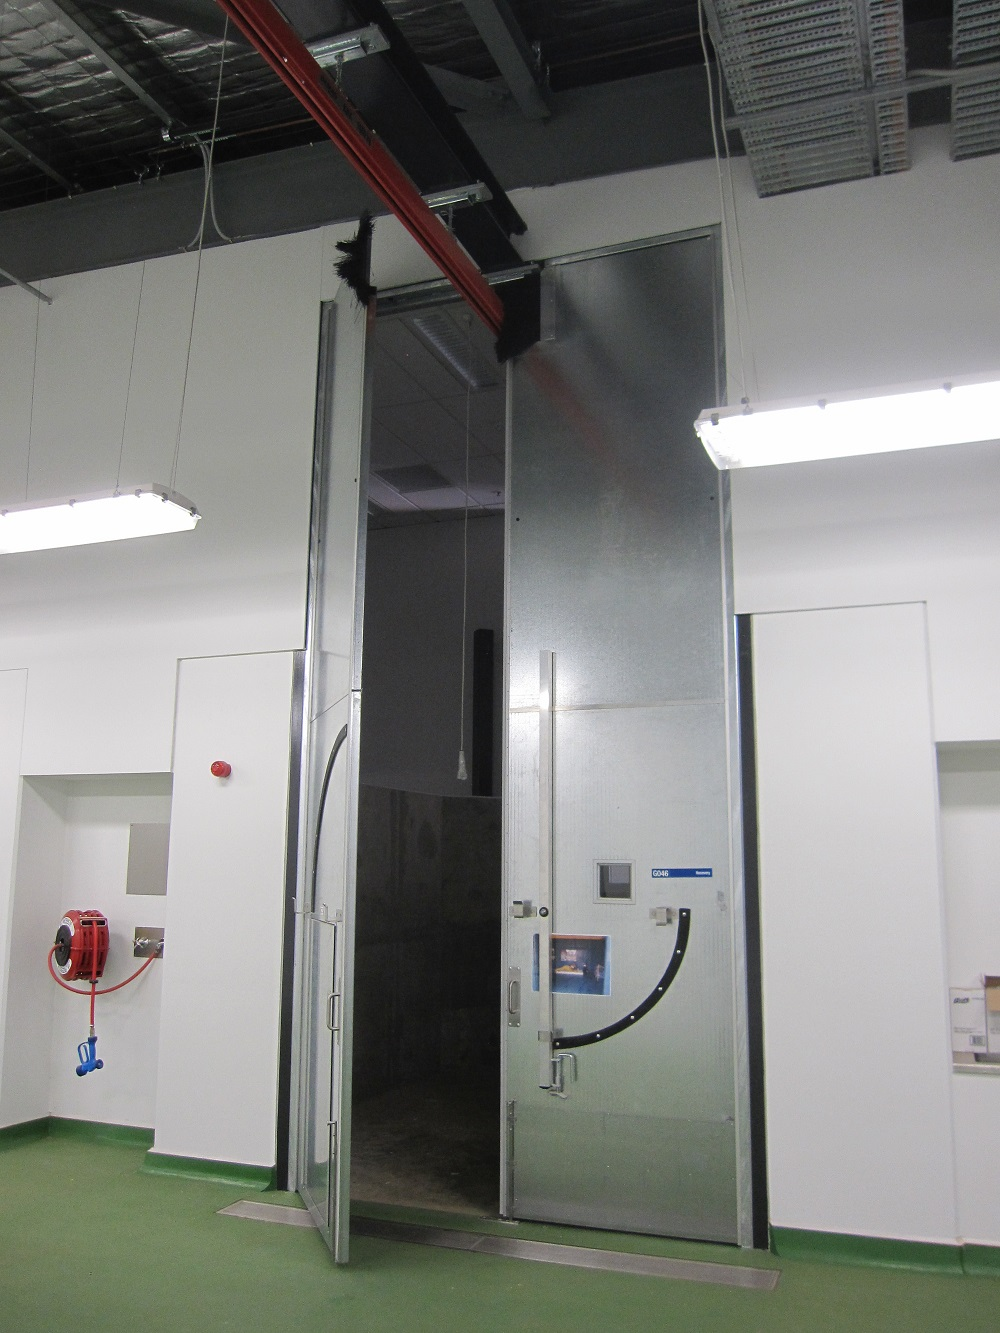 High-Impact-Doors-5200mm-High-with-Crane-Access-in-Equine-Hospital-2